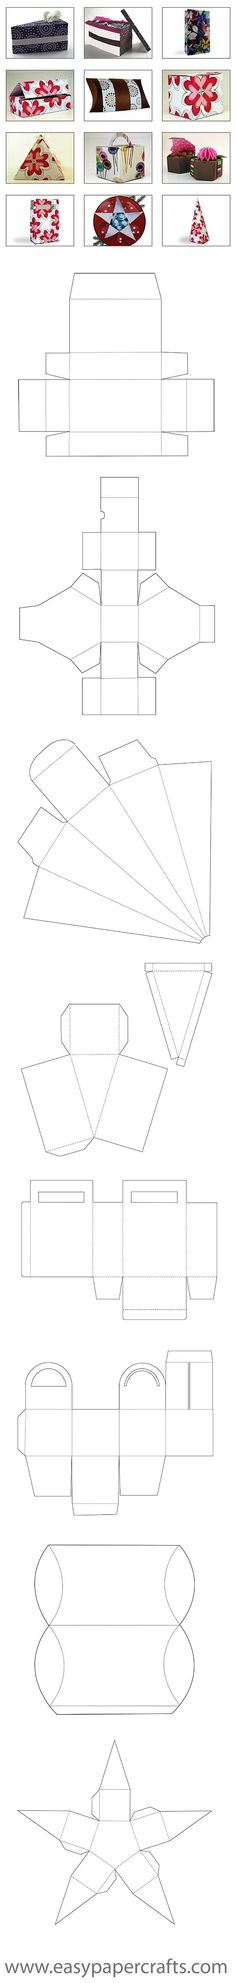 free envelope templates to fit a standard A2 card (measuring 4-1 4 - a2 envelope template